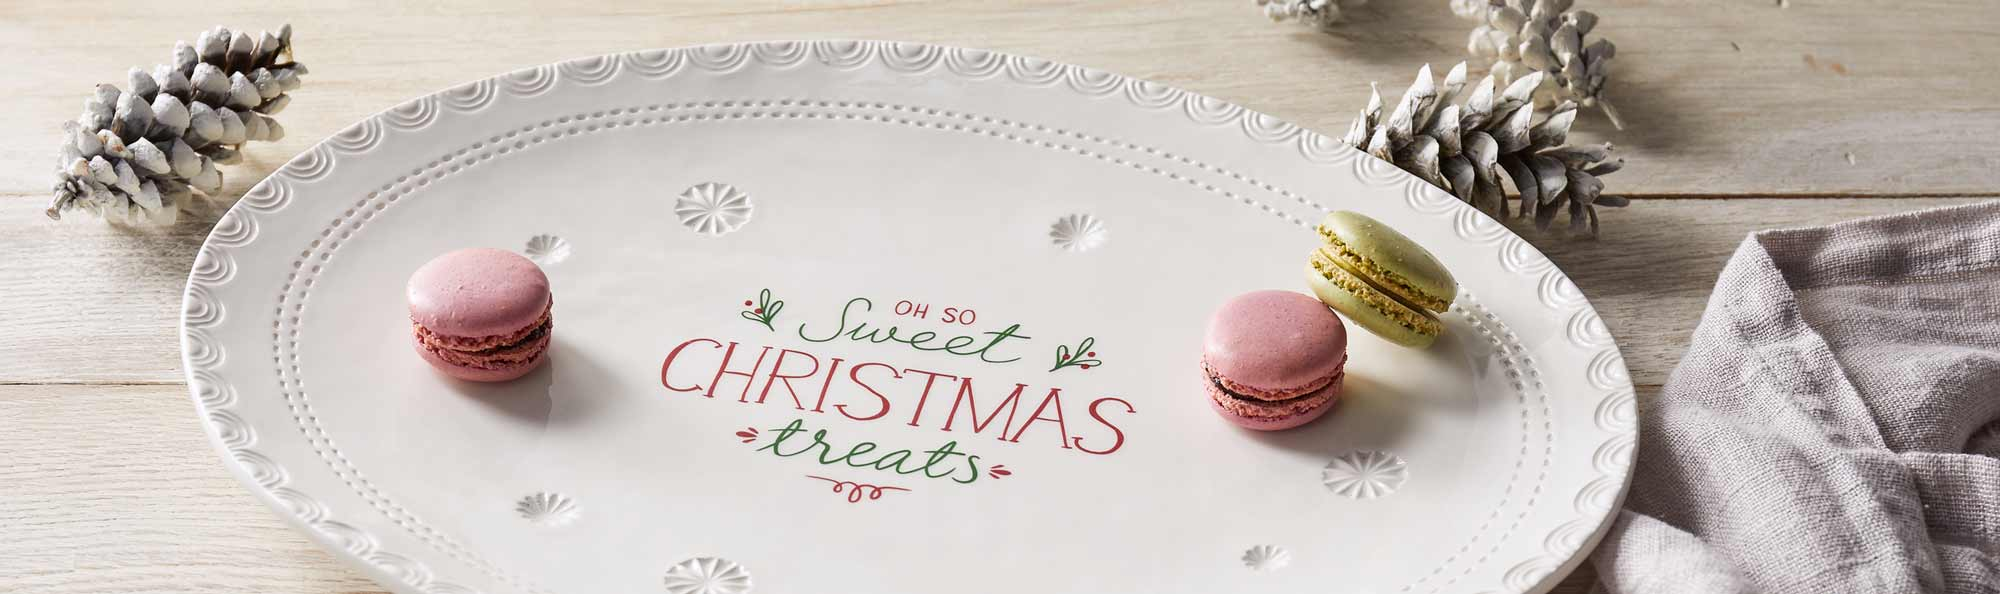 White plate of cookies with the words Oh so Sweet Christmas Treats